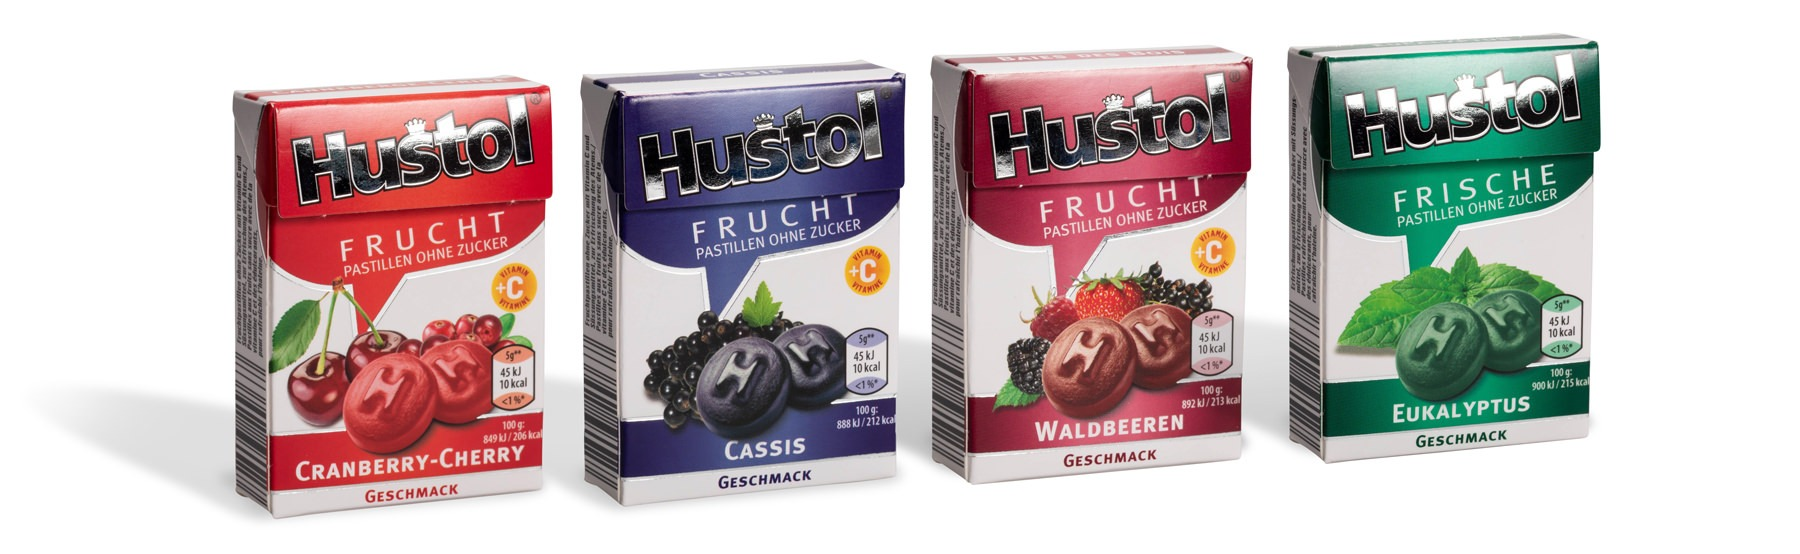 Hustol Cranberry-Cherry, Cassis, Waldbeeren, Eukalyptus by roelli roelli.